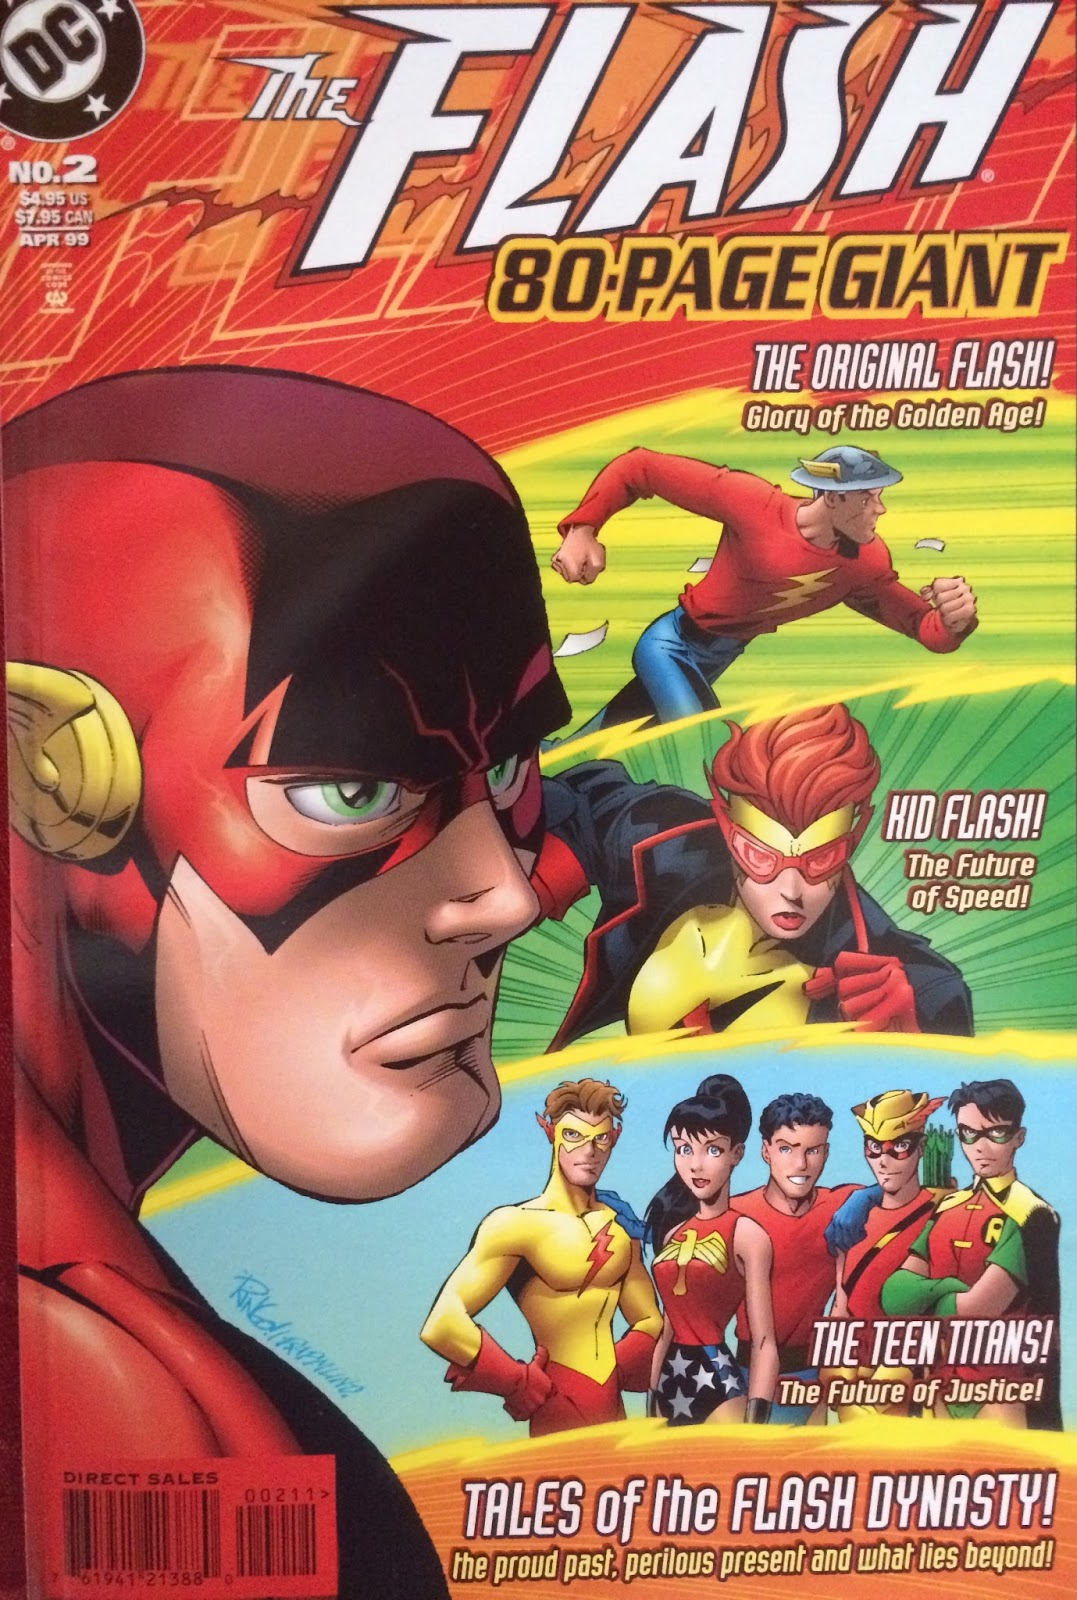 The Bart Allen (Flash) Blog: The Flash 80-Page Giant #2